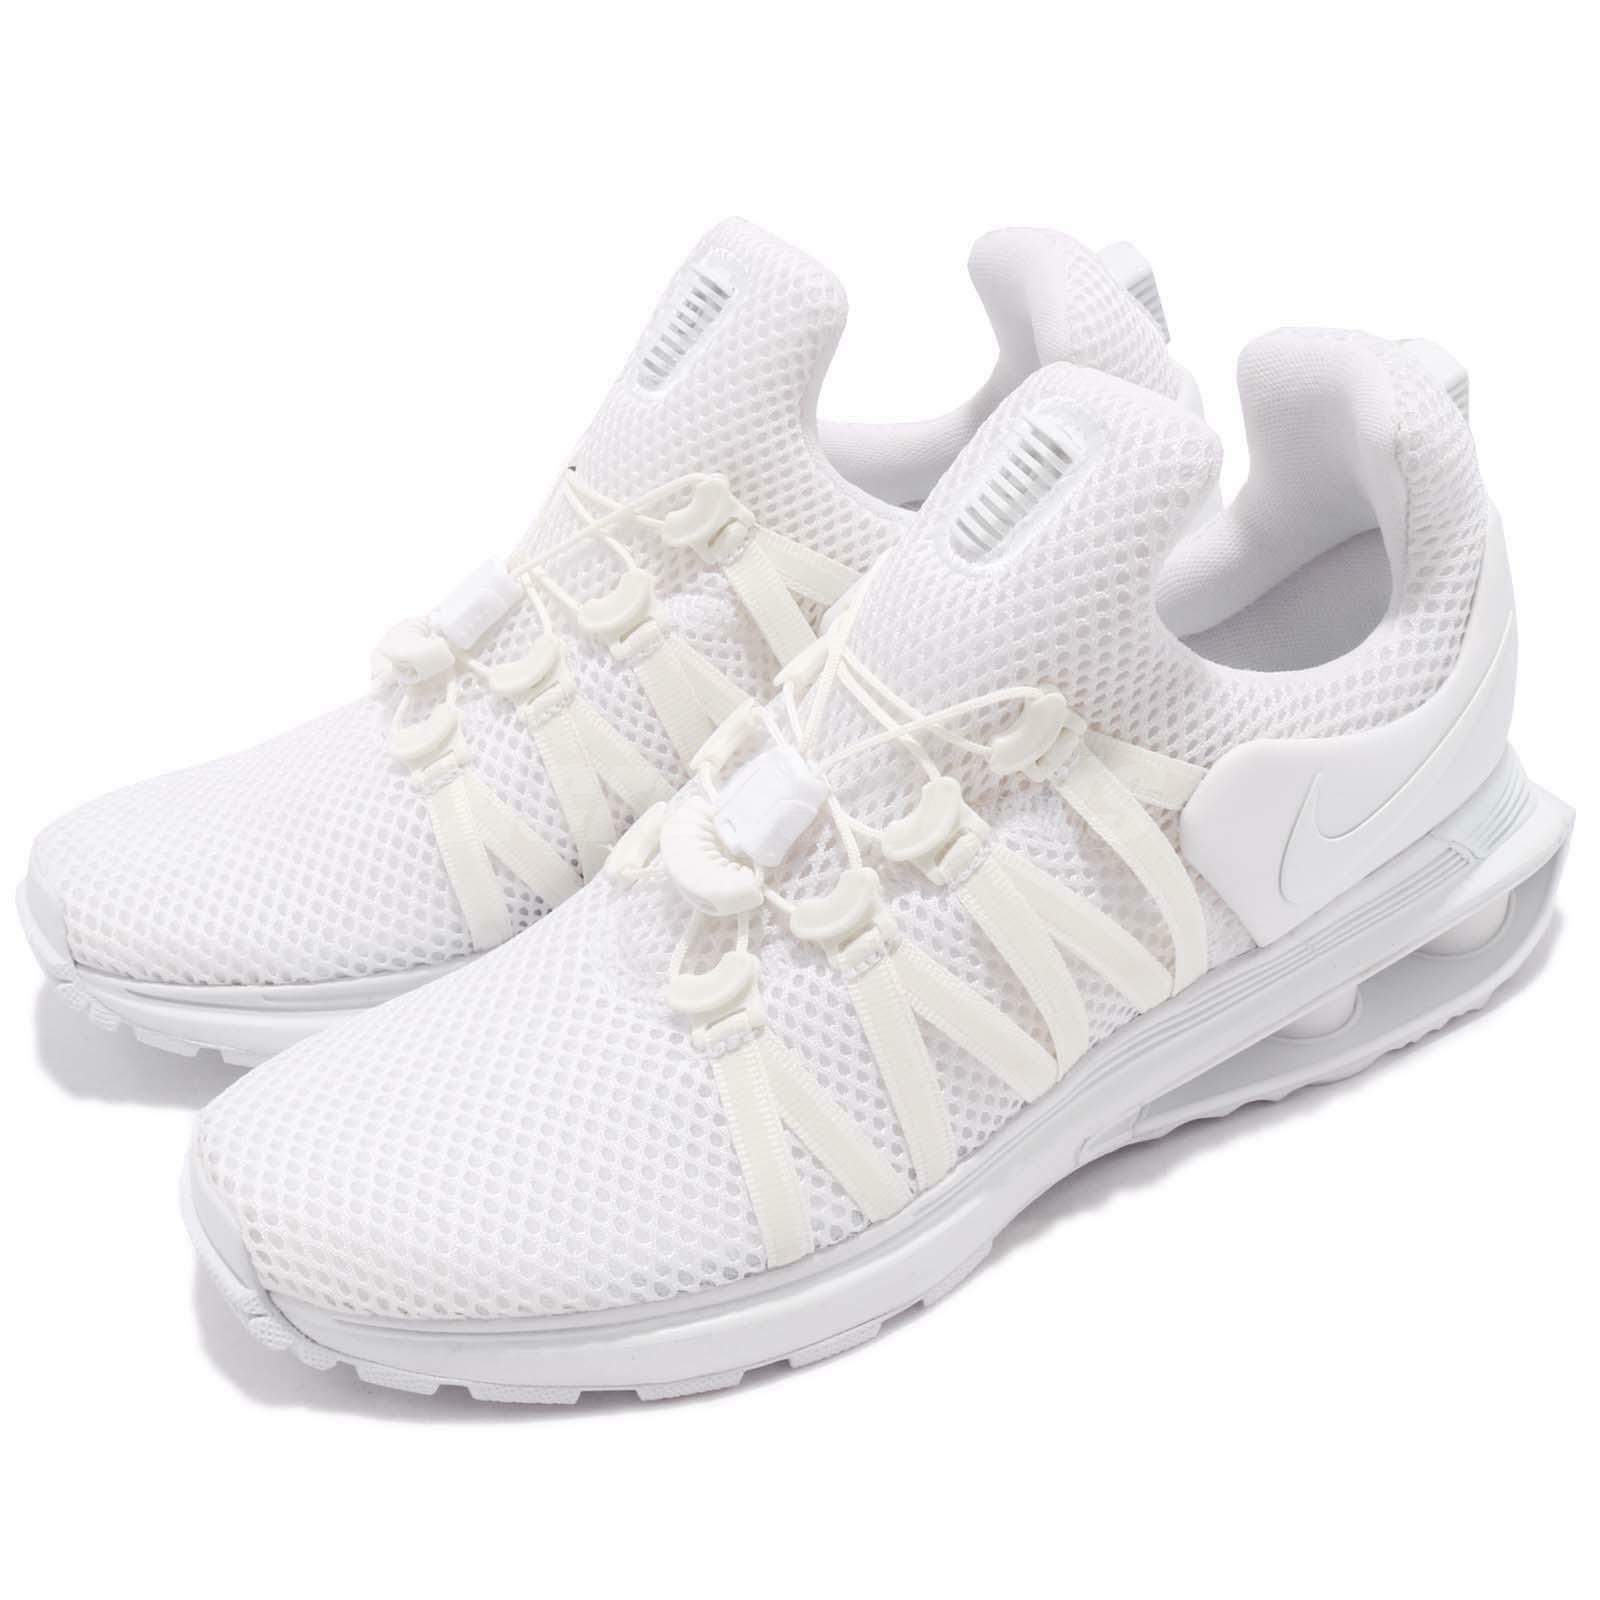 sports shoes 5be76 13c3d Nike Nike Nike Wmns Shox Gravity Triple White Women Running Shoes Sneakers  AQ8554-100 55dae5